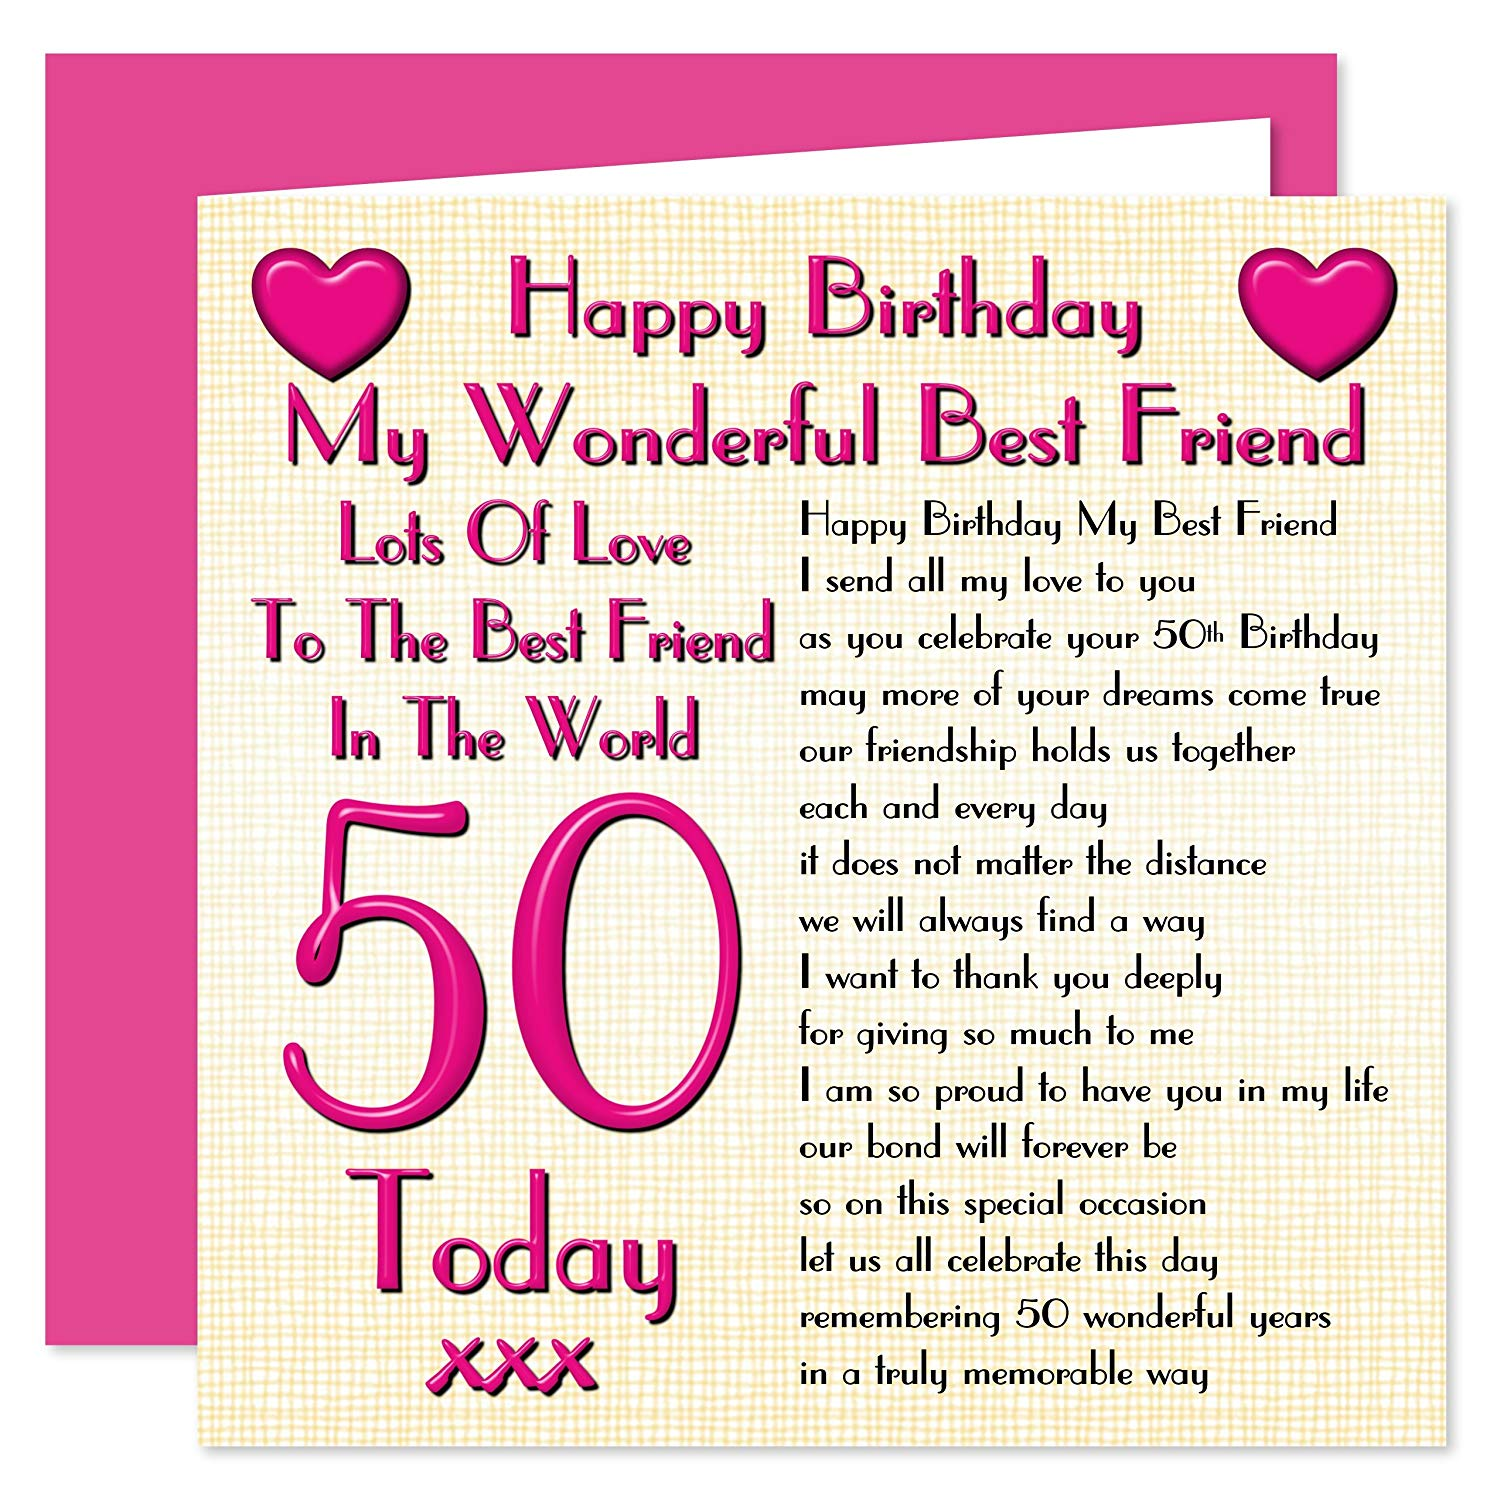 birthday card images for best friend ; 91RX7Fb1hIL